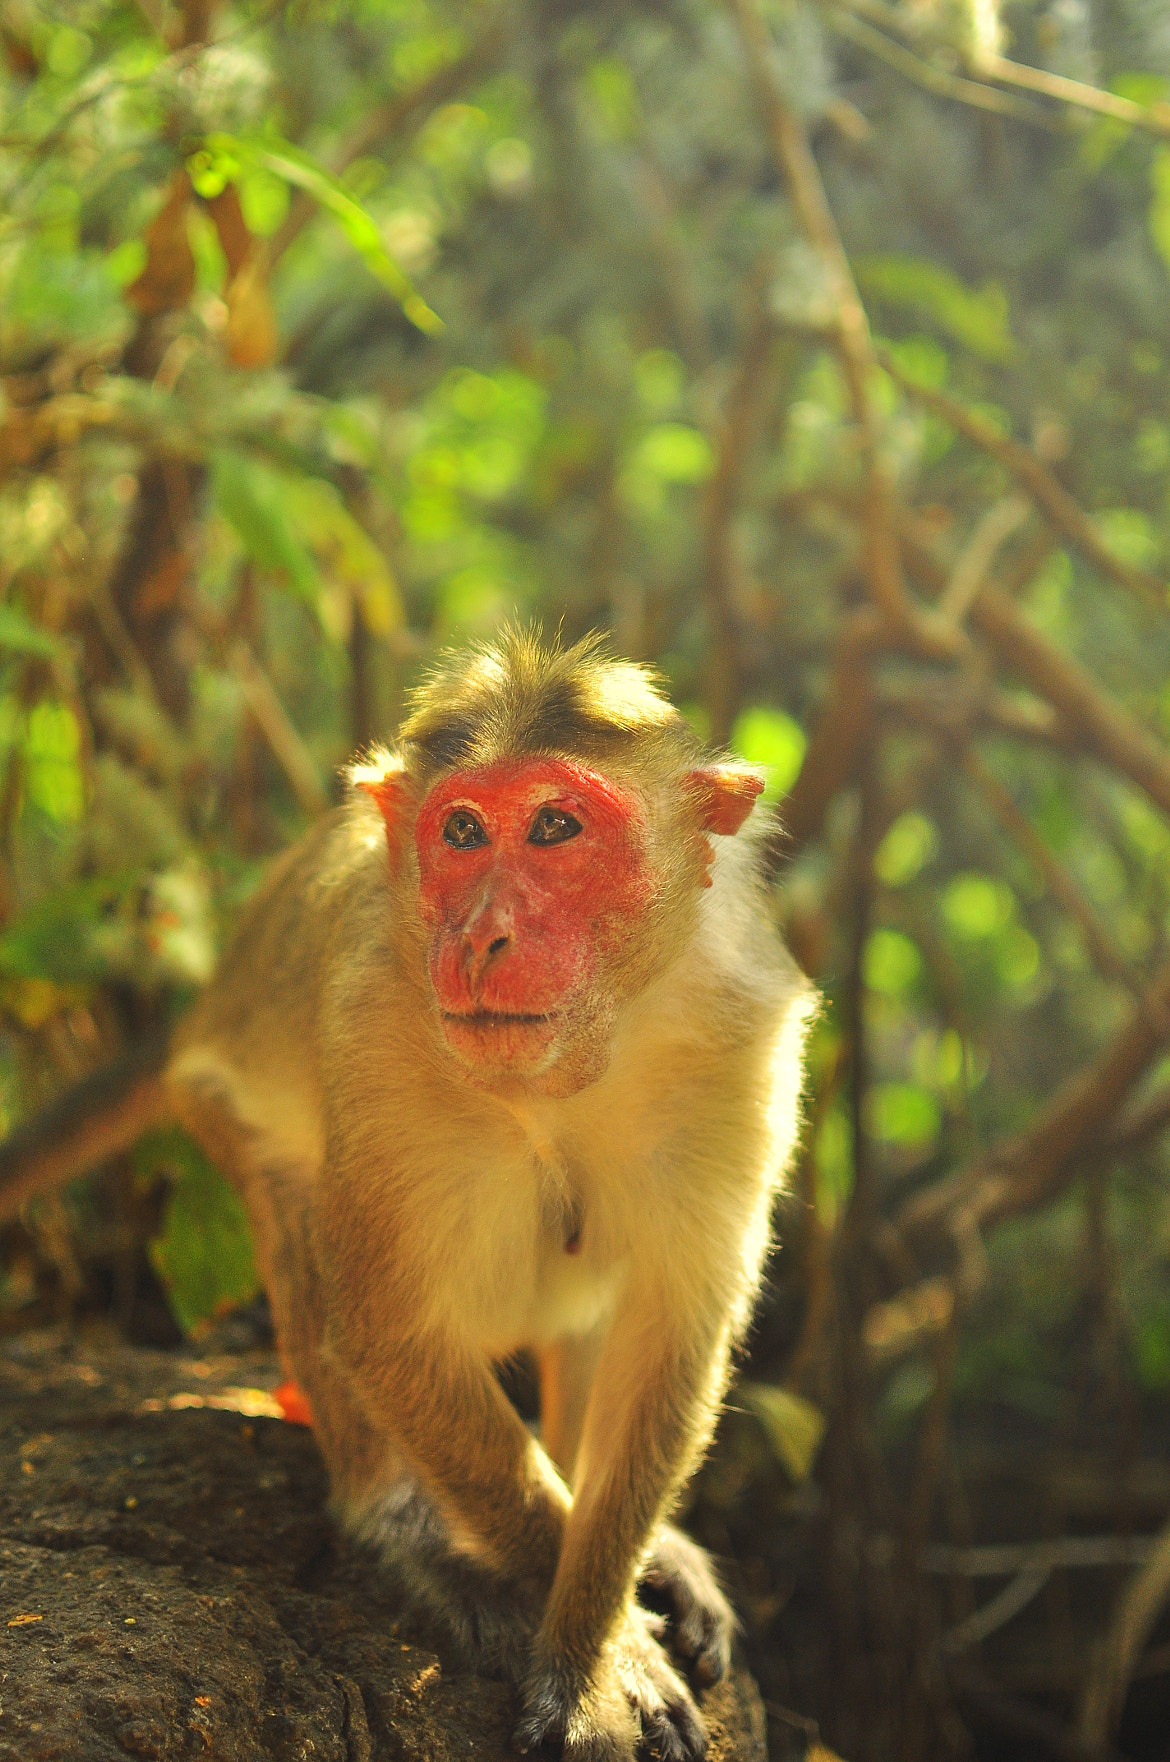 Photograph The monkey by Ivan Morozov on 500px